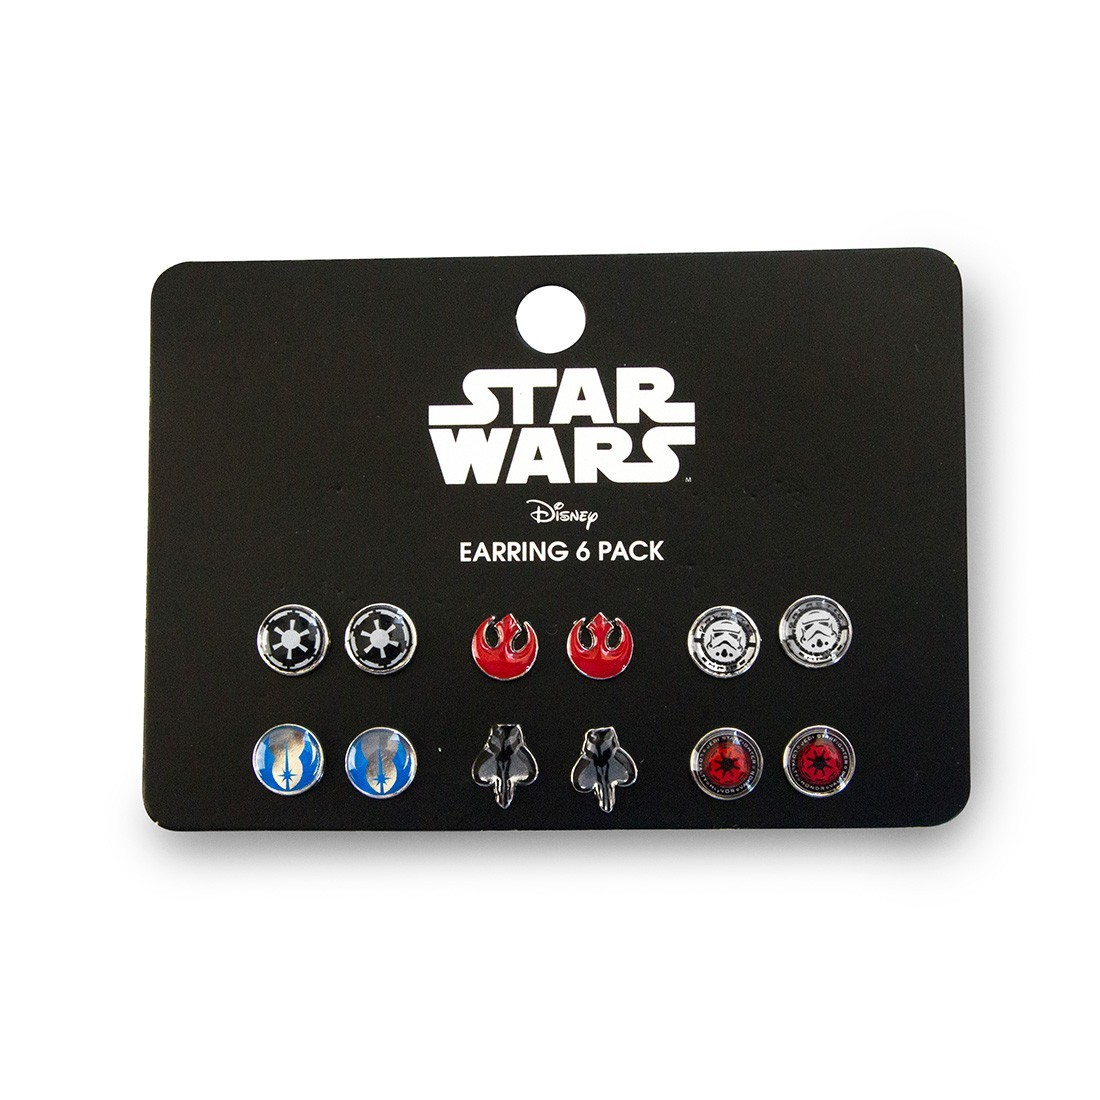 Star Wars Symbols Earrings image